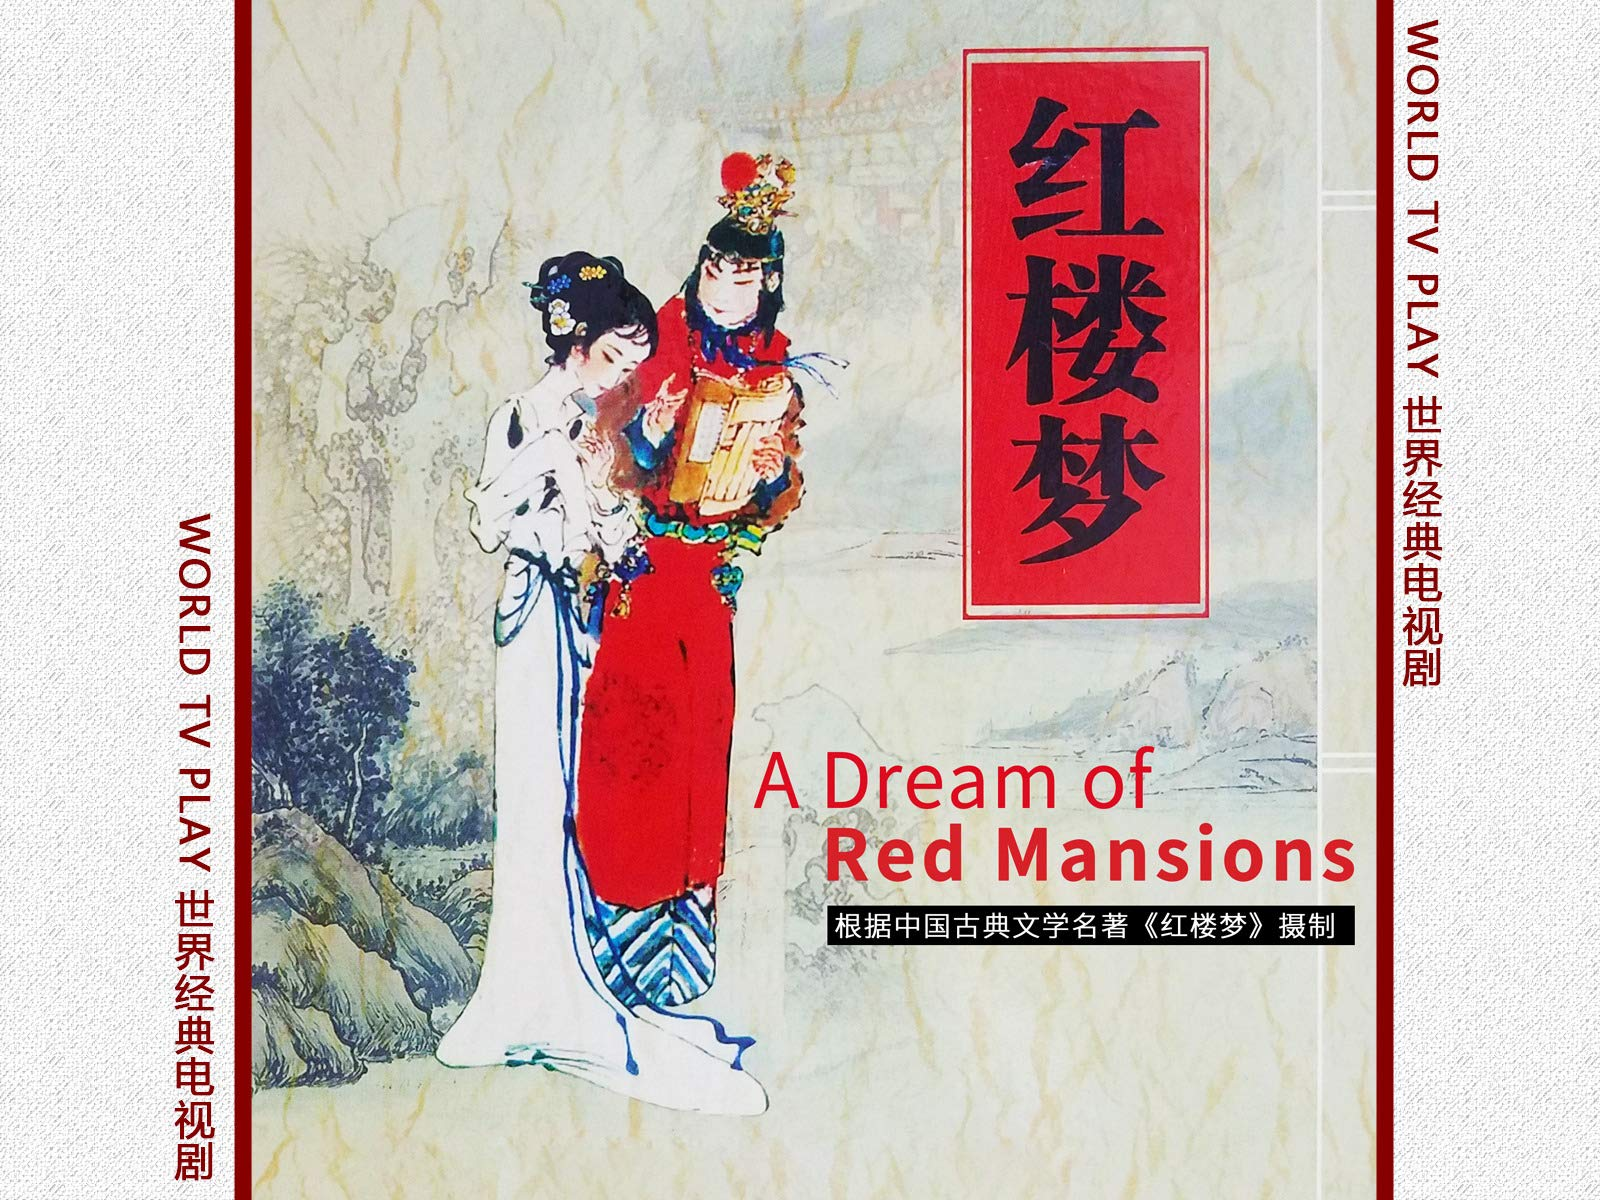 A Dream of Red Mansions - Season 1